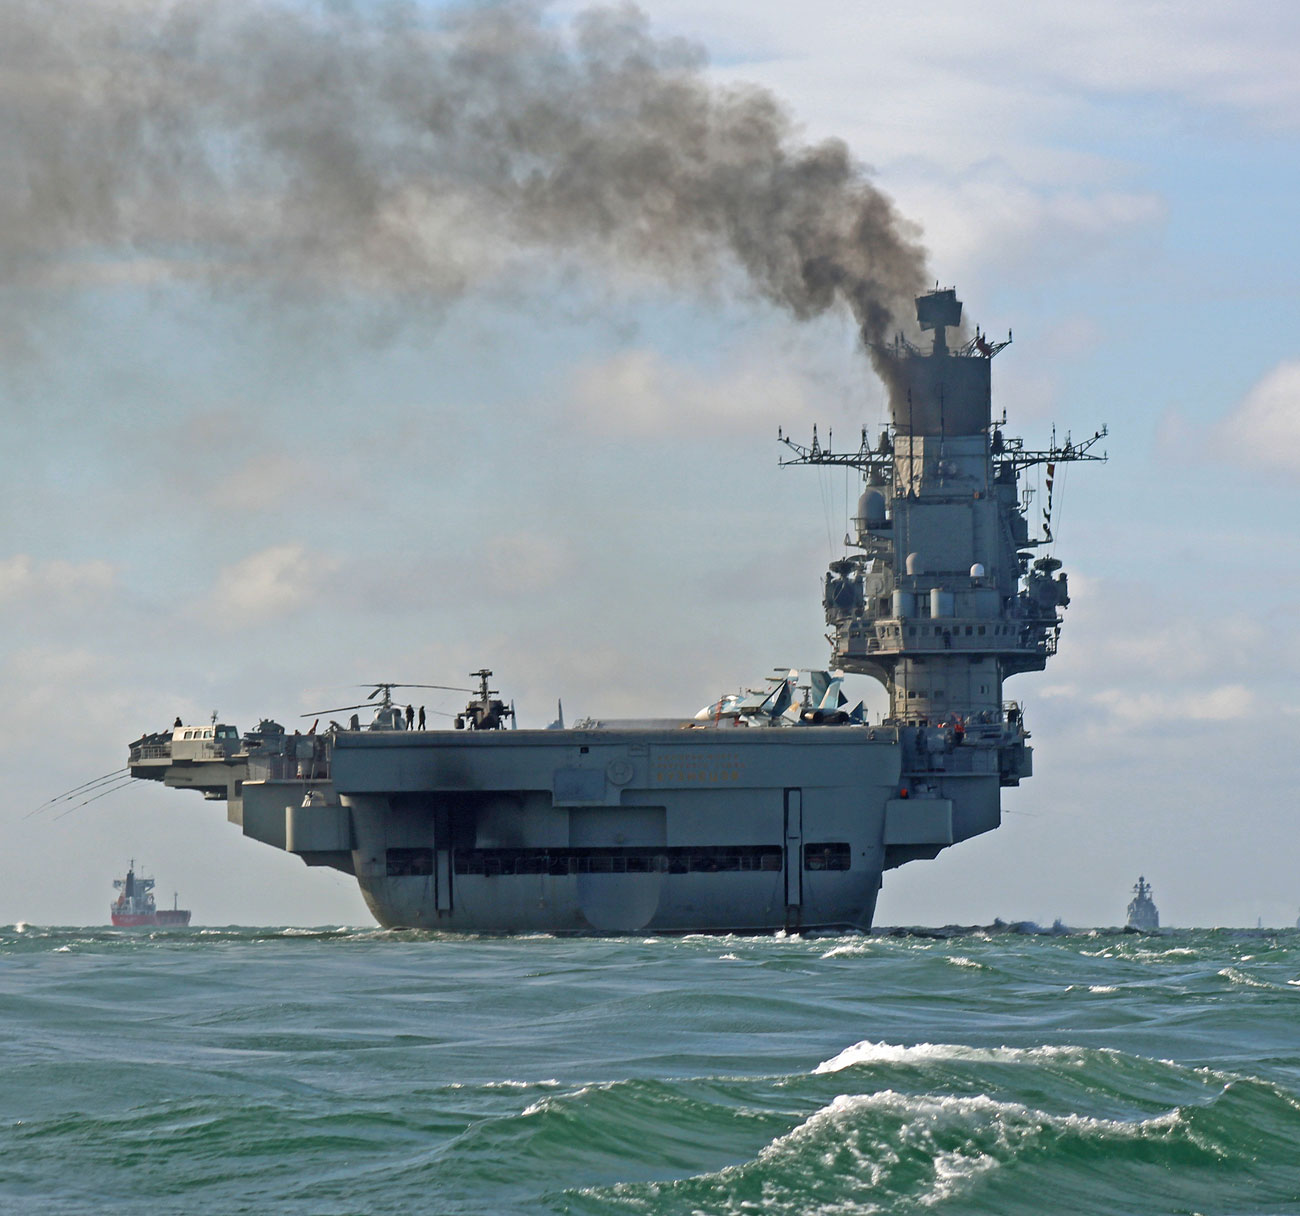 No threat: Admiral Kuznetsov is an aircraft cruiser launched in 1985 that serves as the flagship of the Russian Navy.